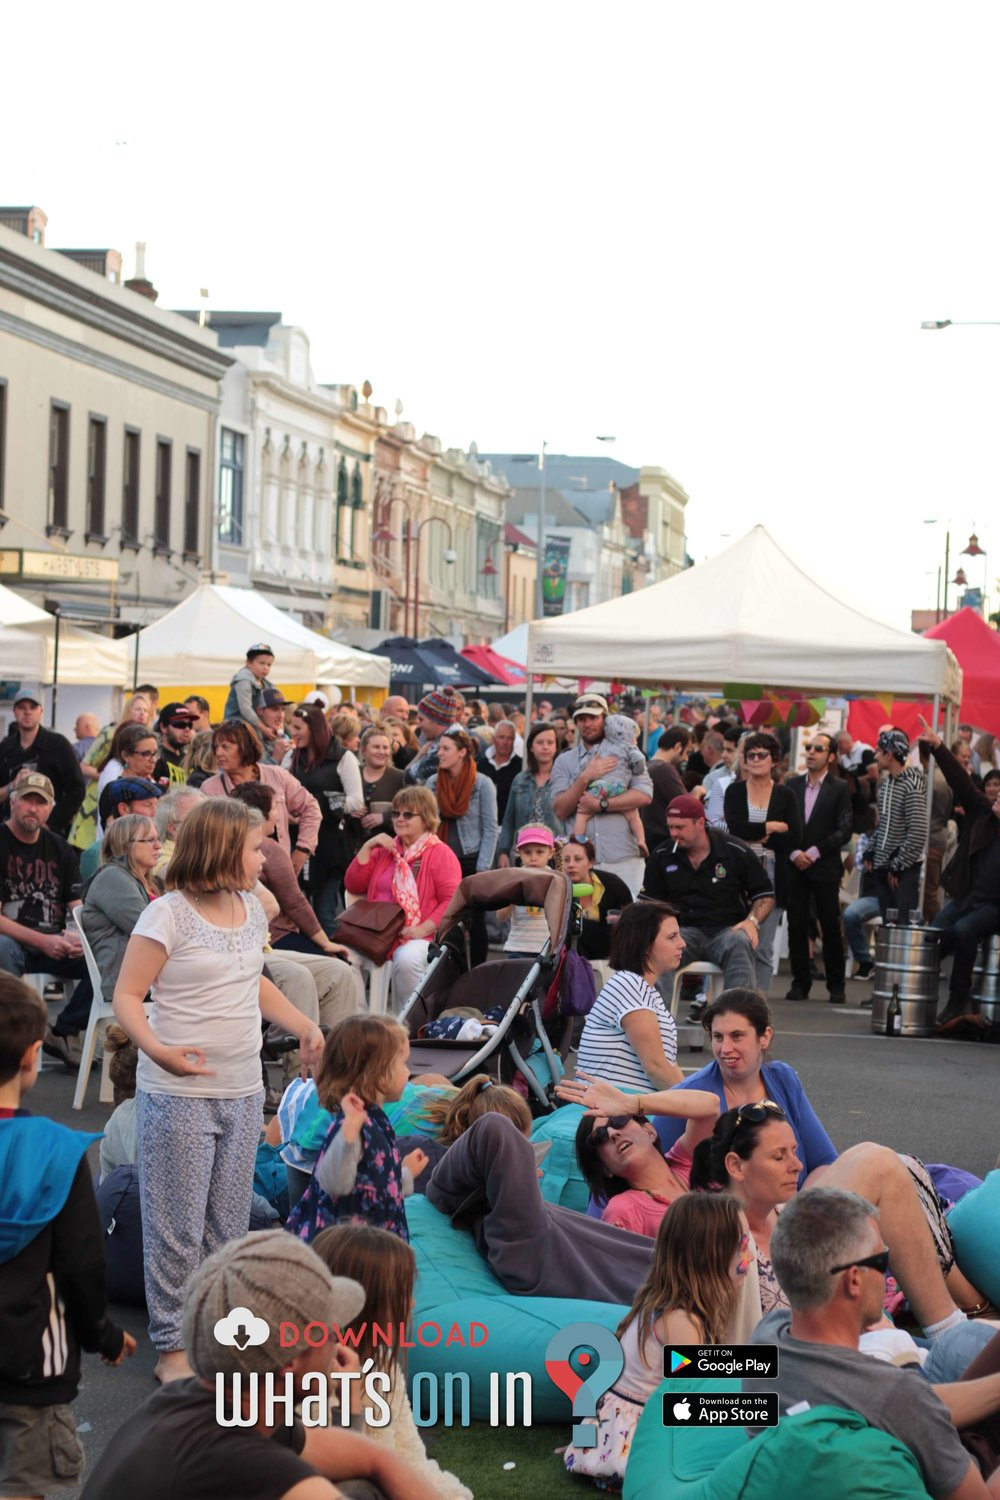 Fiesta on George Festival, Launceston, Tasmania 2016 - What's On In App 227 IMG_7993.jpg